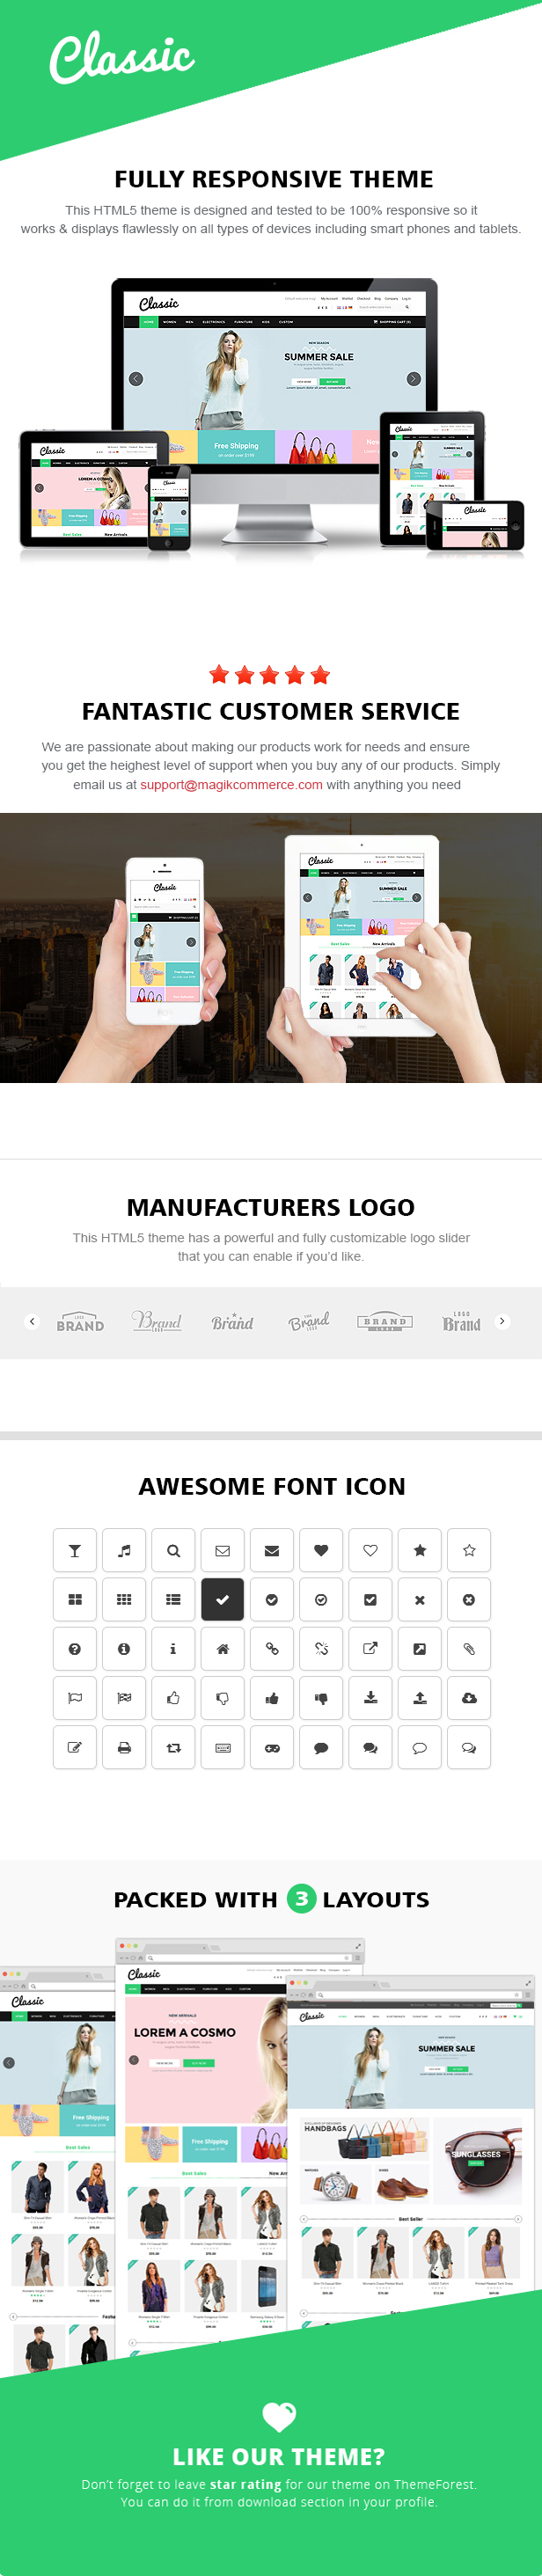 classic responsive html template